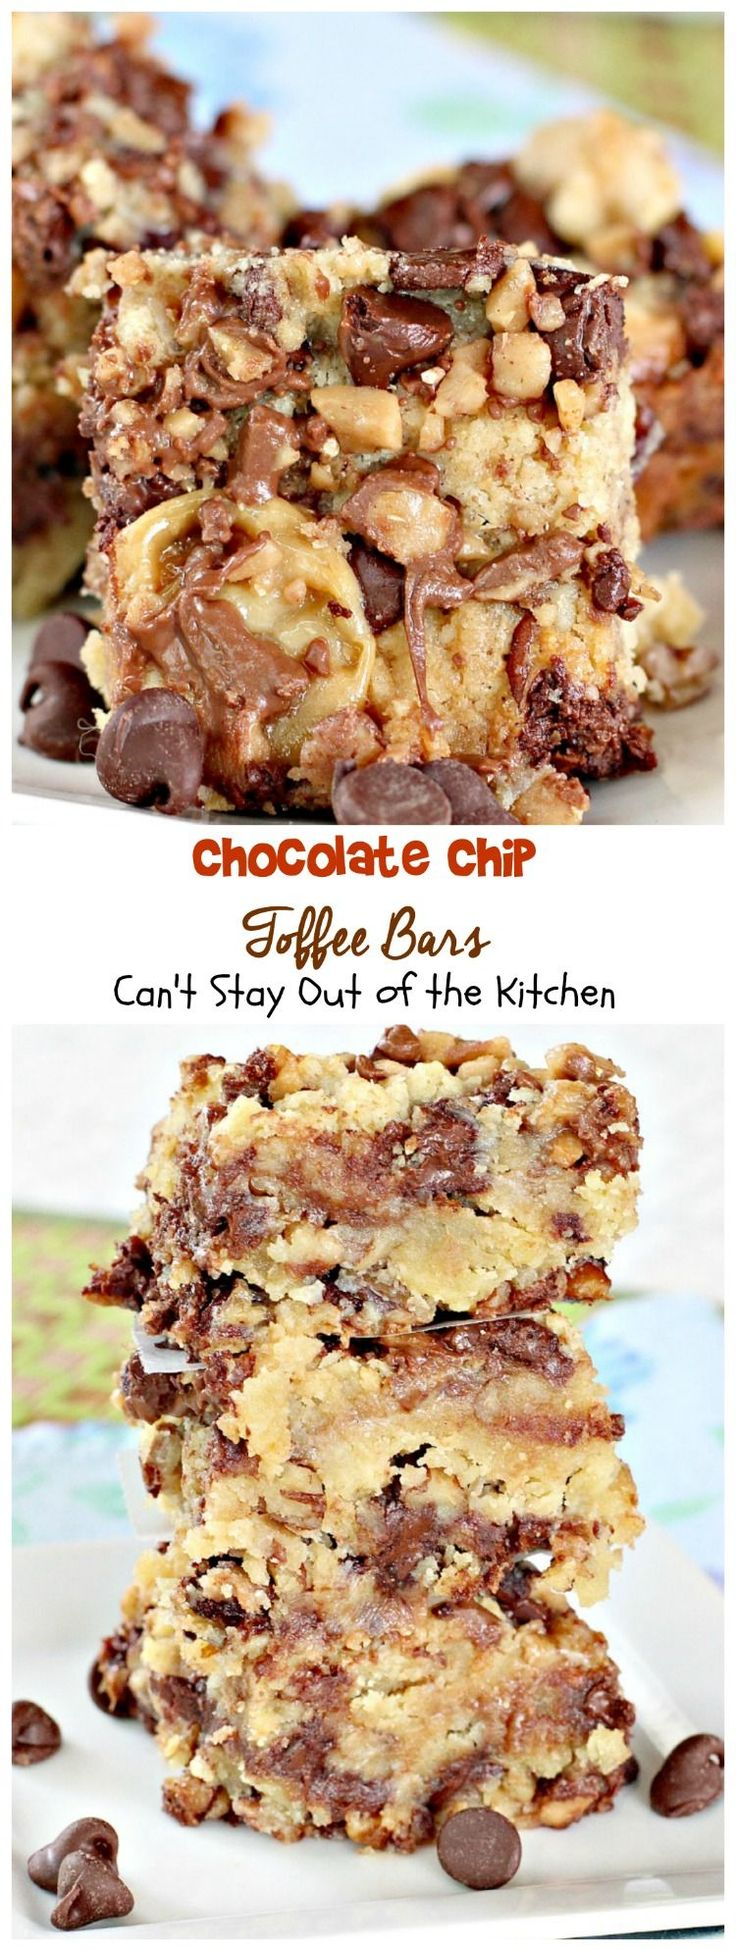 Chocolate Chip Toffee Bars, making this Gluten Free wiyh Krusteaz GF Flour blend!